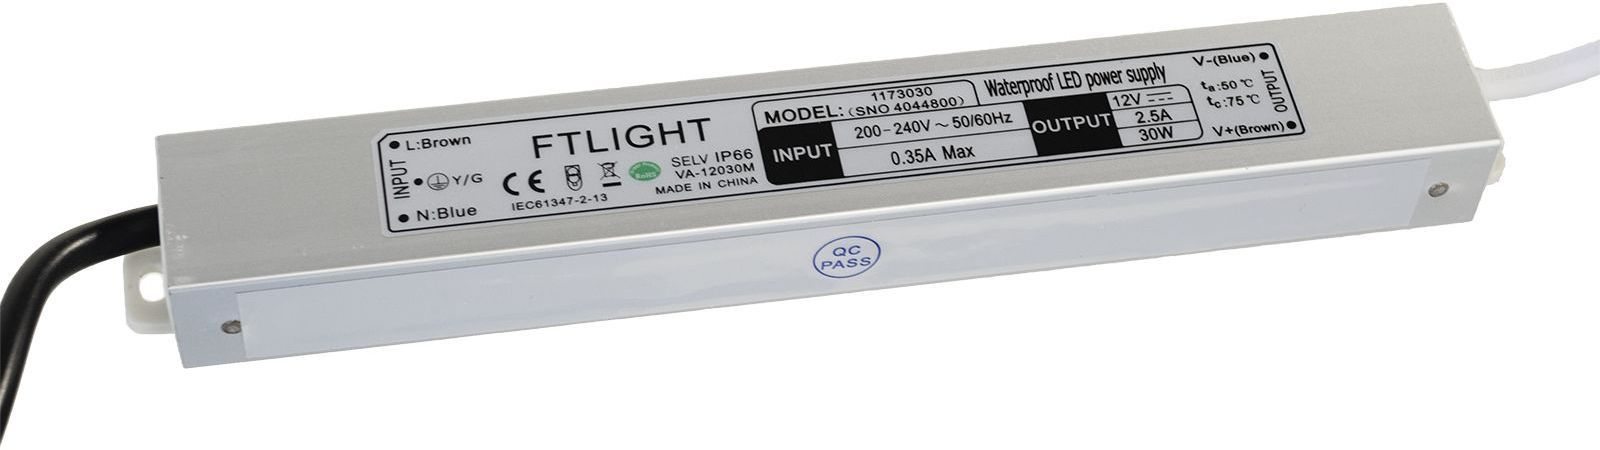 LED-muuntaja FTLight 24V, 30W, IP66